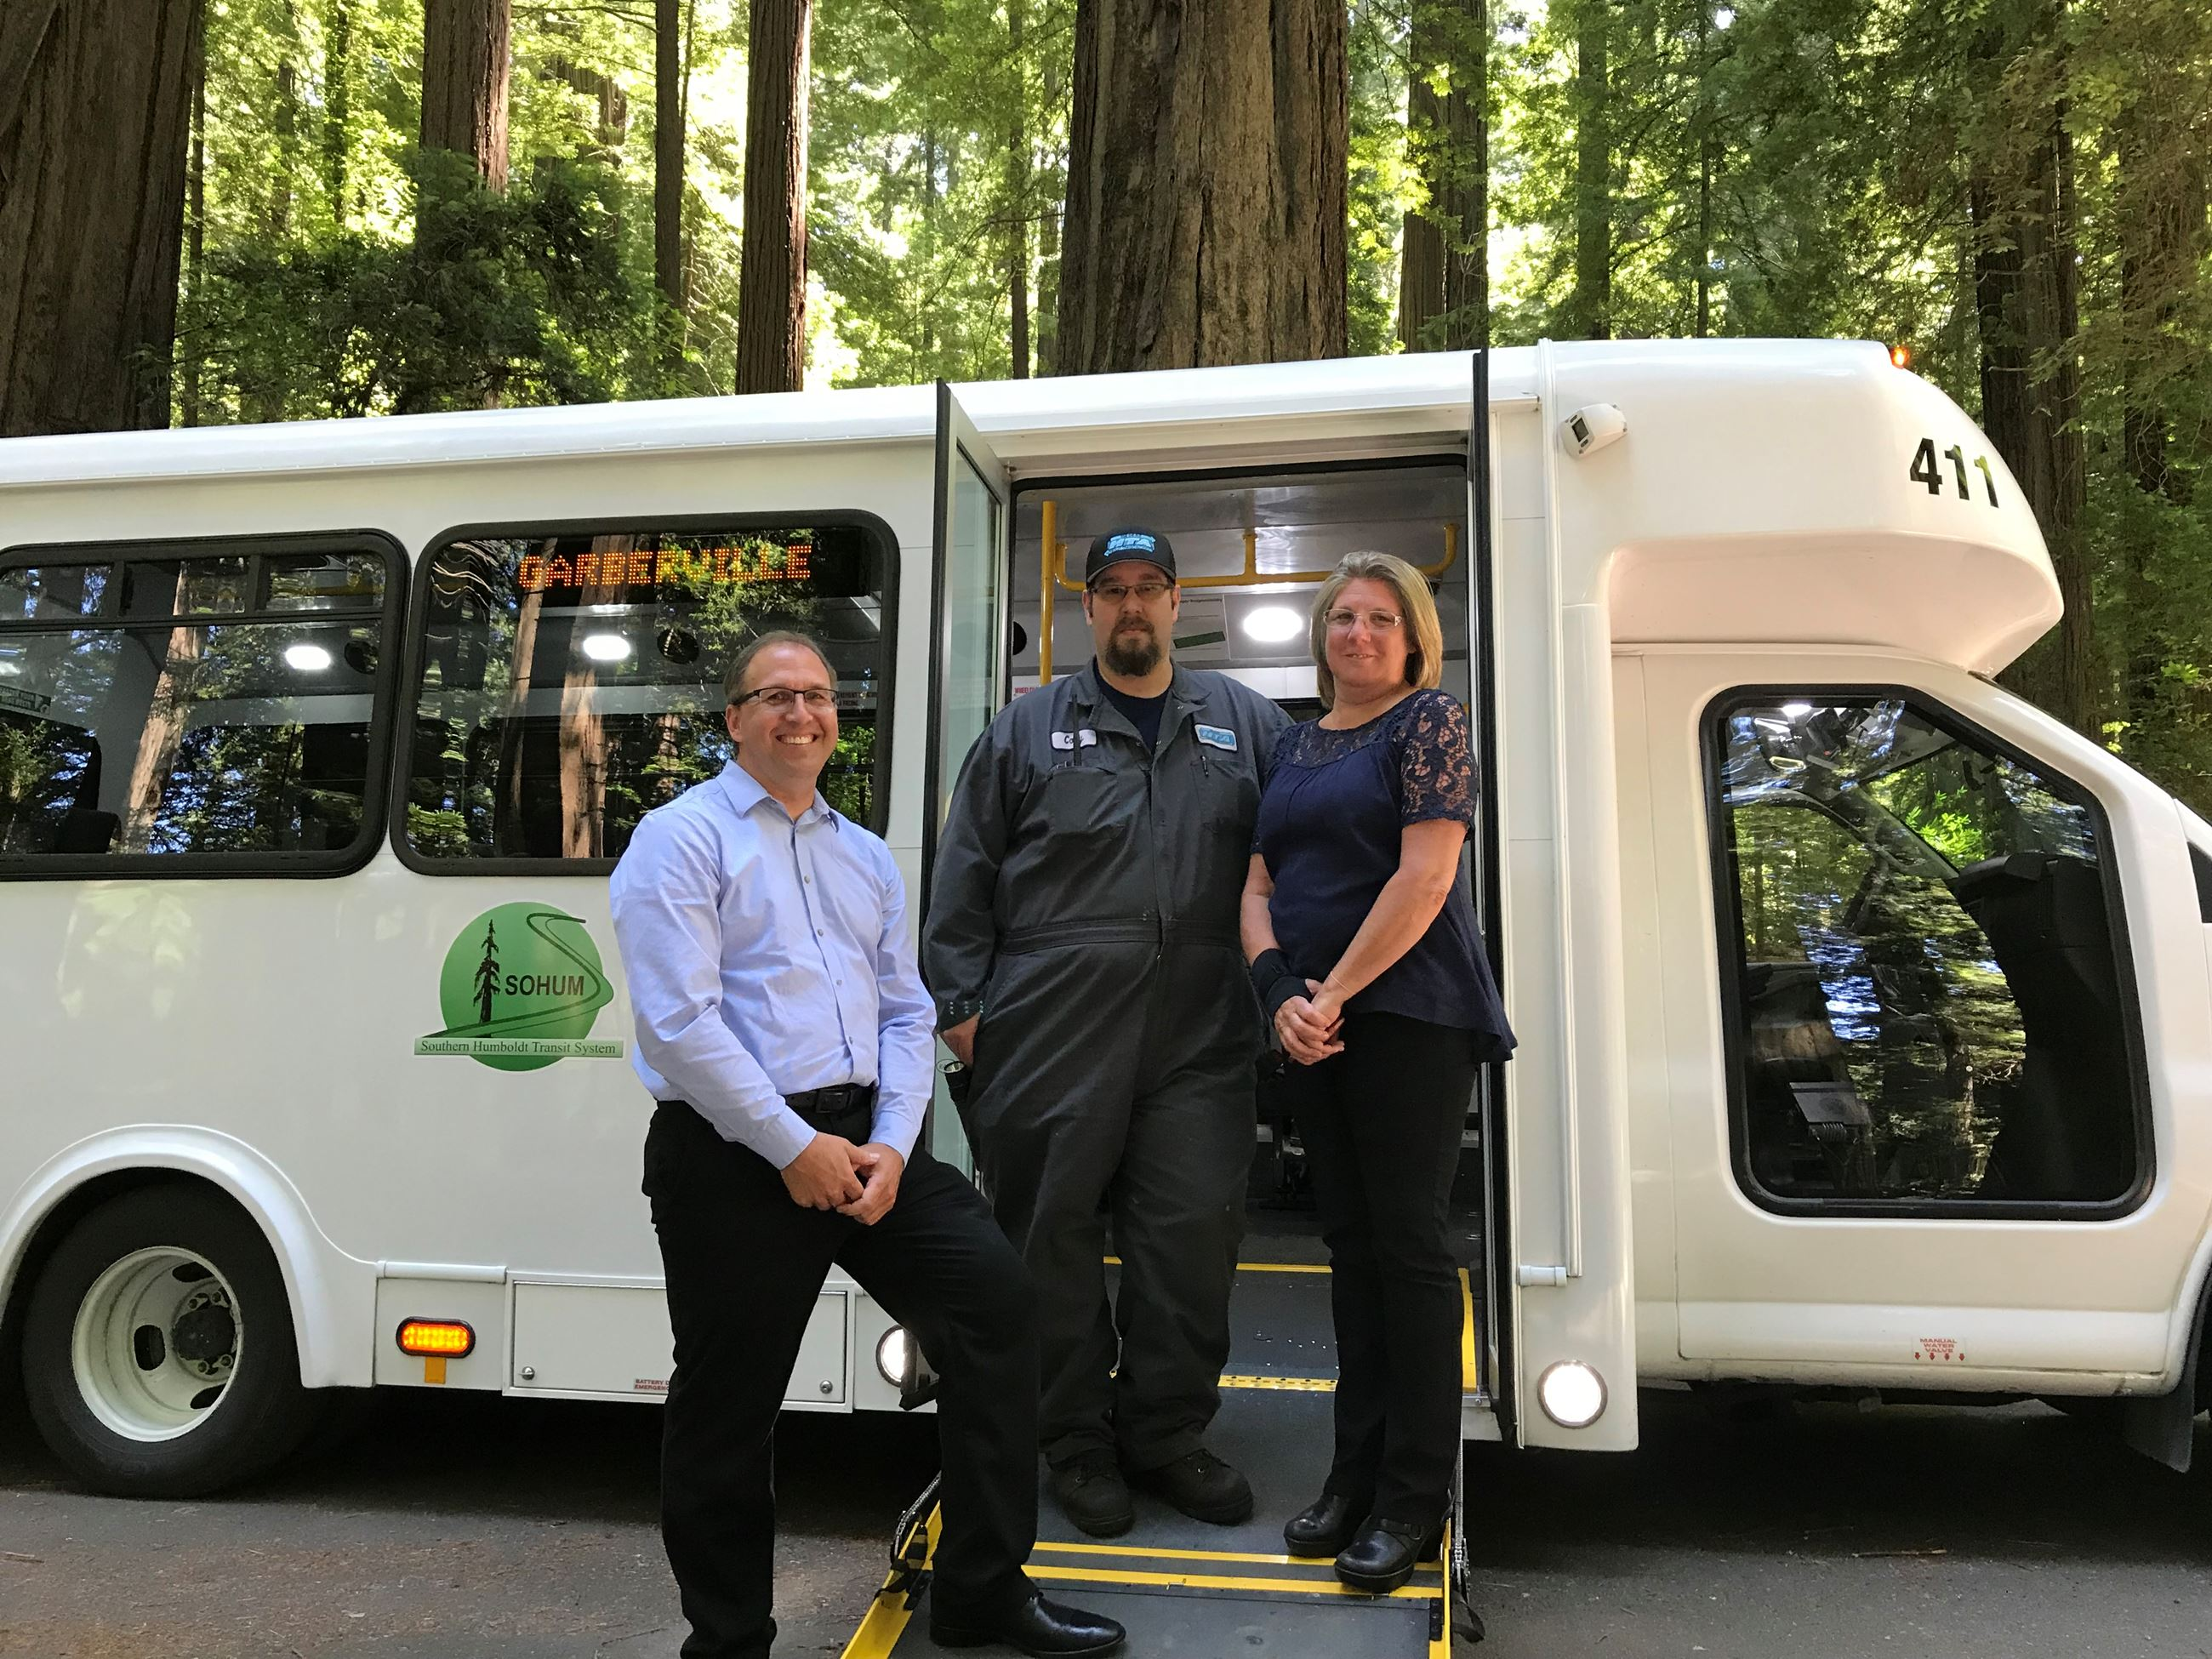 Humboldt Transit Authority bus with three staffers standing in front of it. Tree from the Avenue of